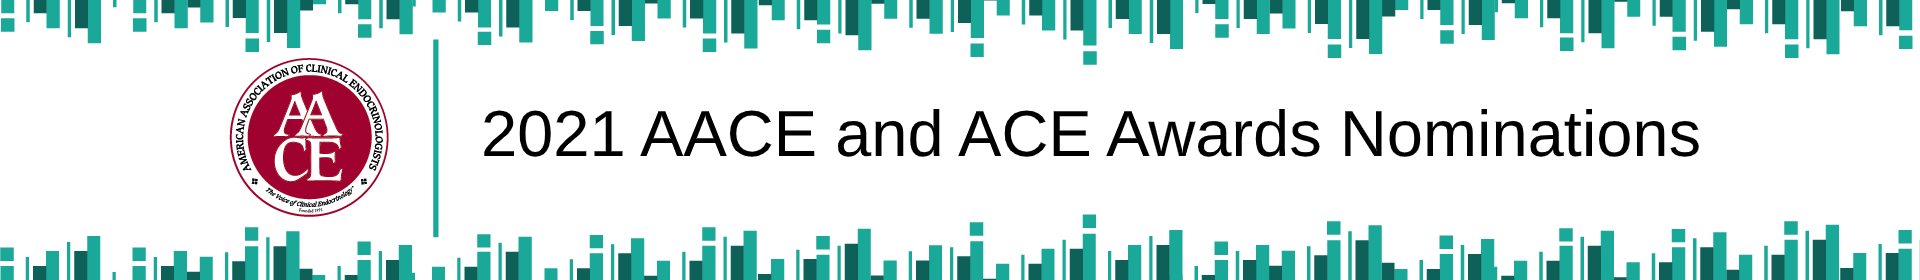 2021 AACE & ACE Award Nominations Event Banner